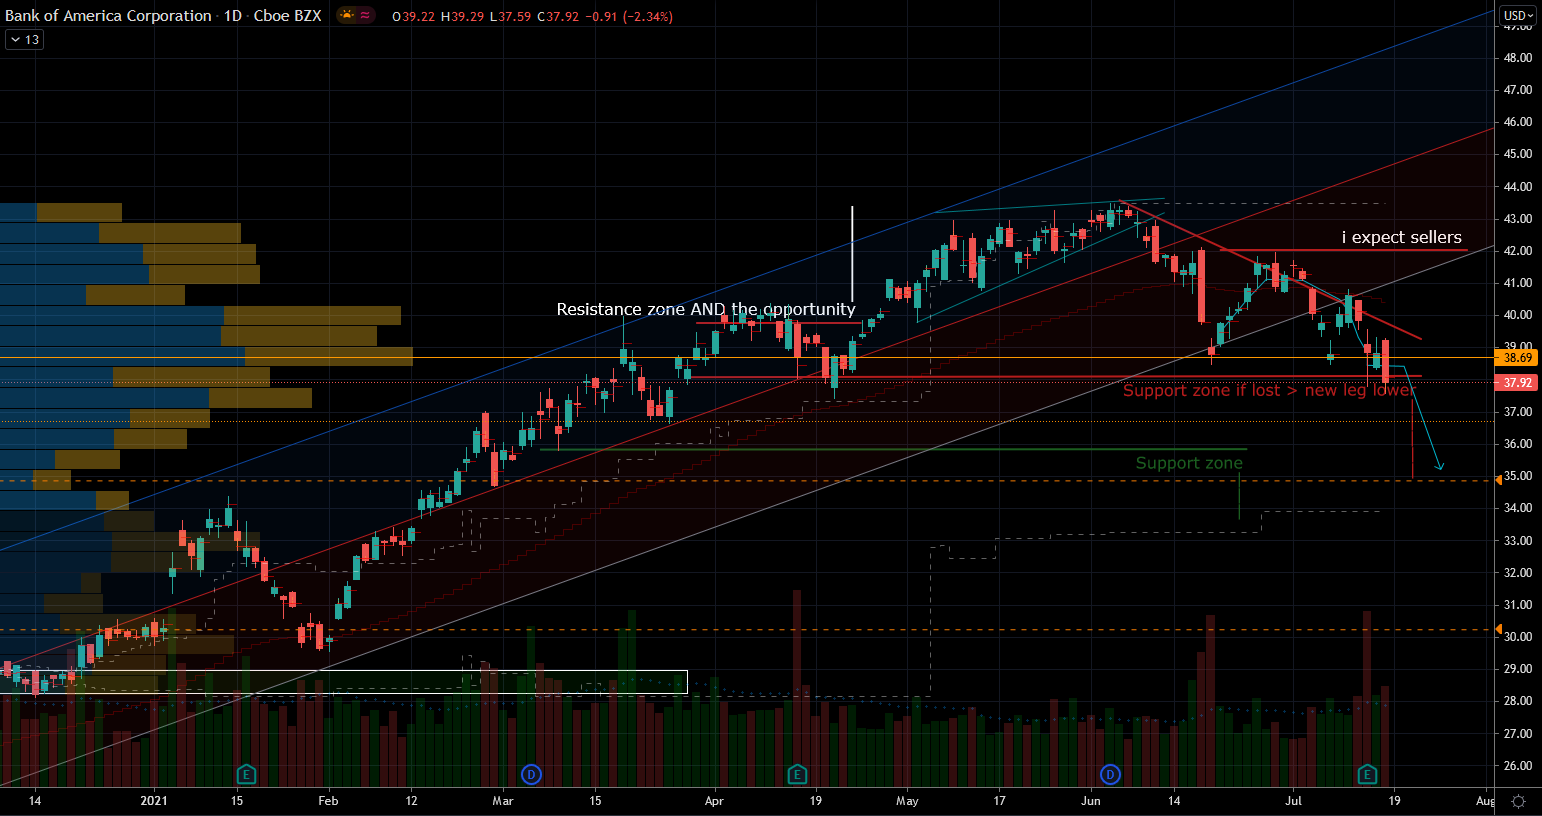 Bank Stocks: Bank of America (BAC) Stock Chart Showing Potential Support